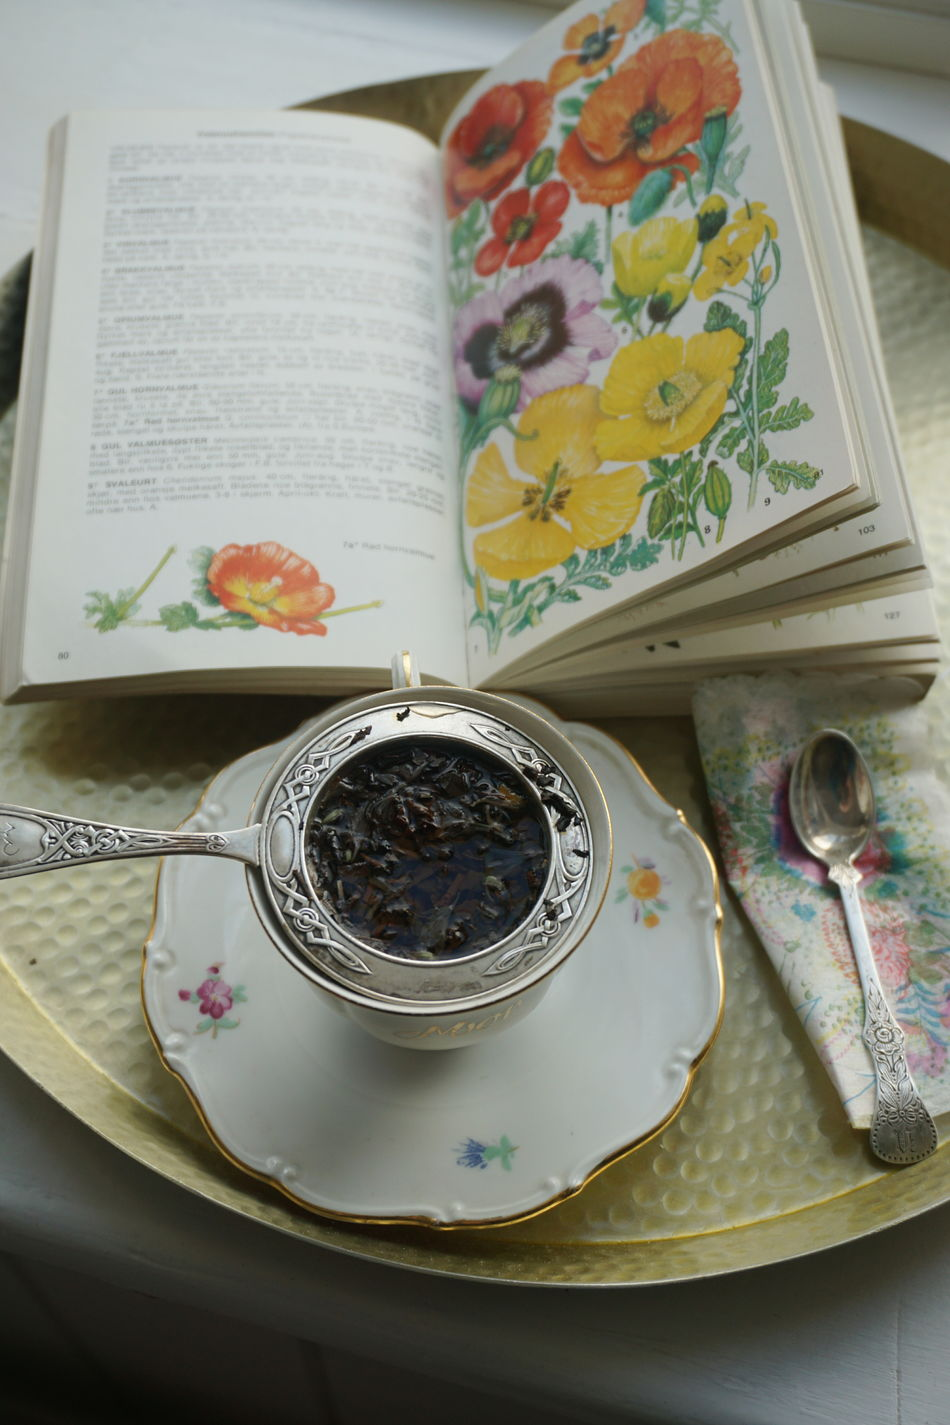 Tea time Book Botany Close-up Day Food Food And Drink Freshness High Angle View Hot Drink Hot Drinks Indoors  No People Plate Ready-to-eat Table Tea Tea - Hot Drink Tea Time